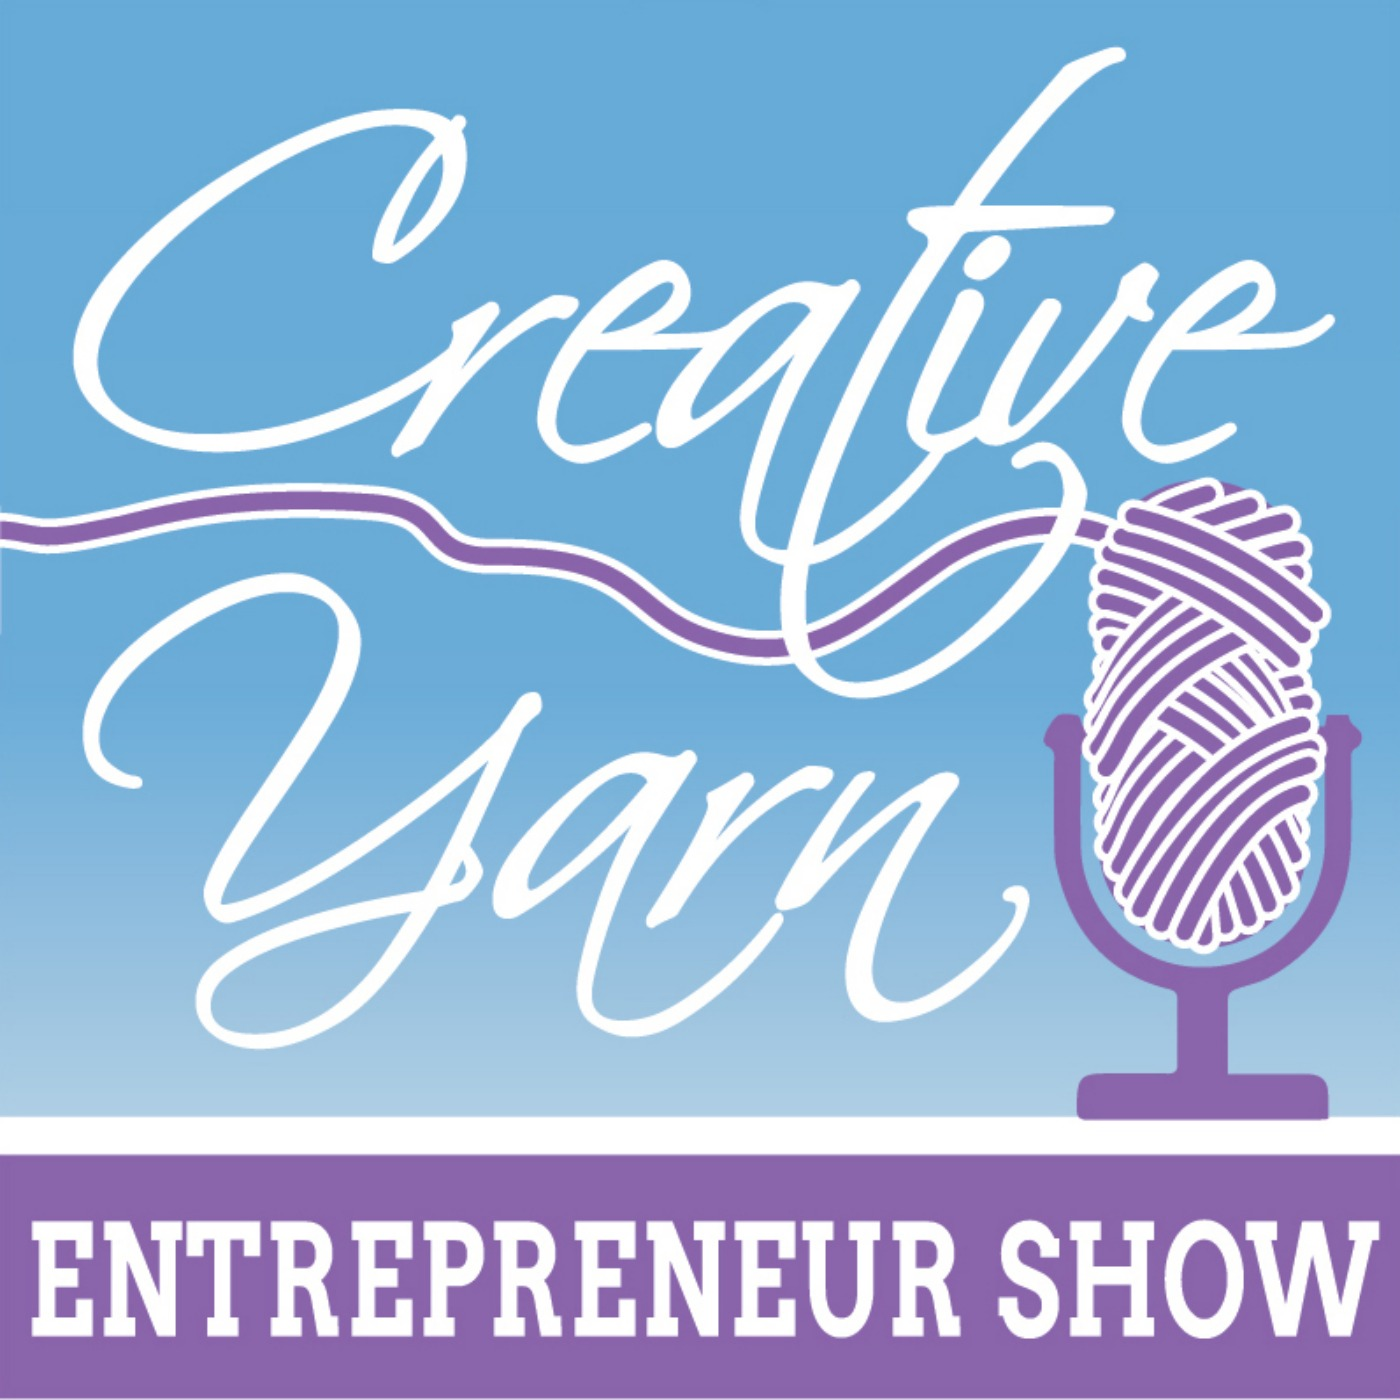 Episode 40: Crochet & Knitting Design & Self-Publishing Mini Series 5: Pricing Your Pattern - The Creative Yarn Entrepreneur Show